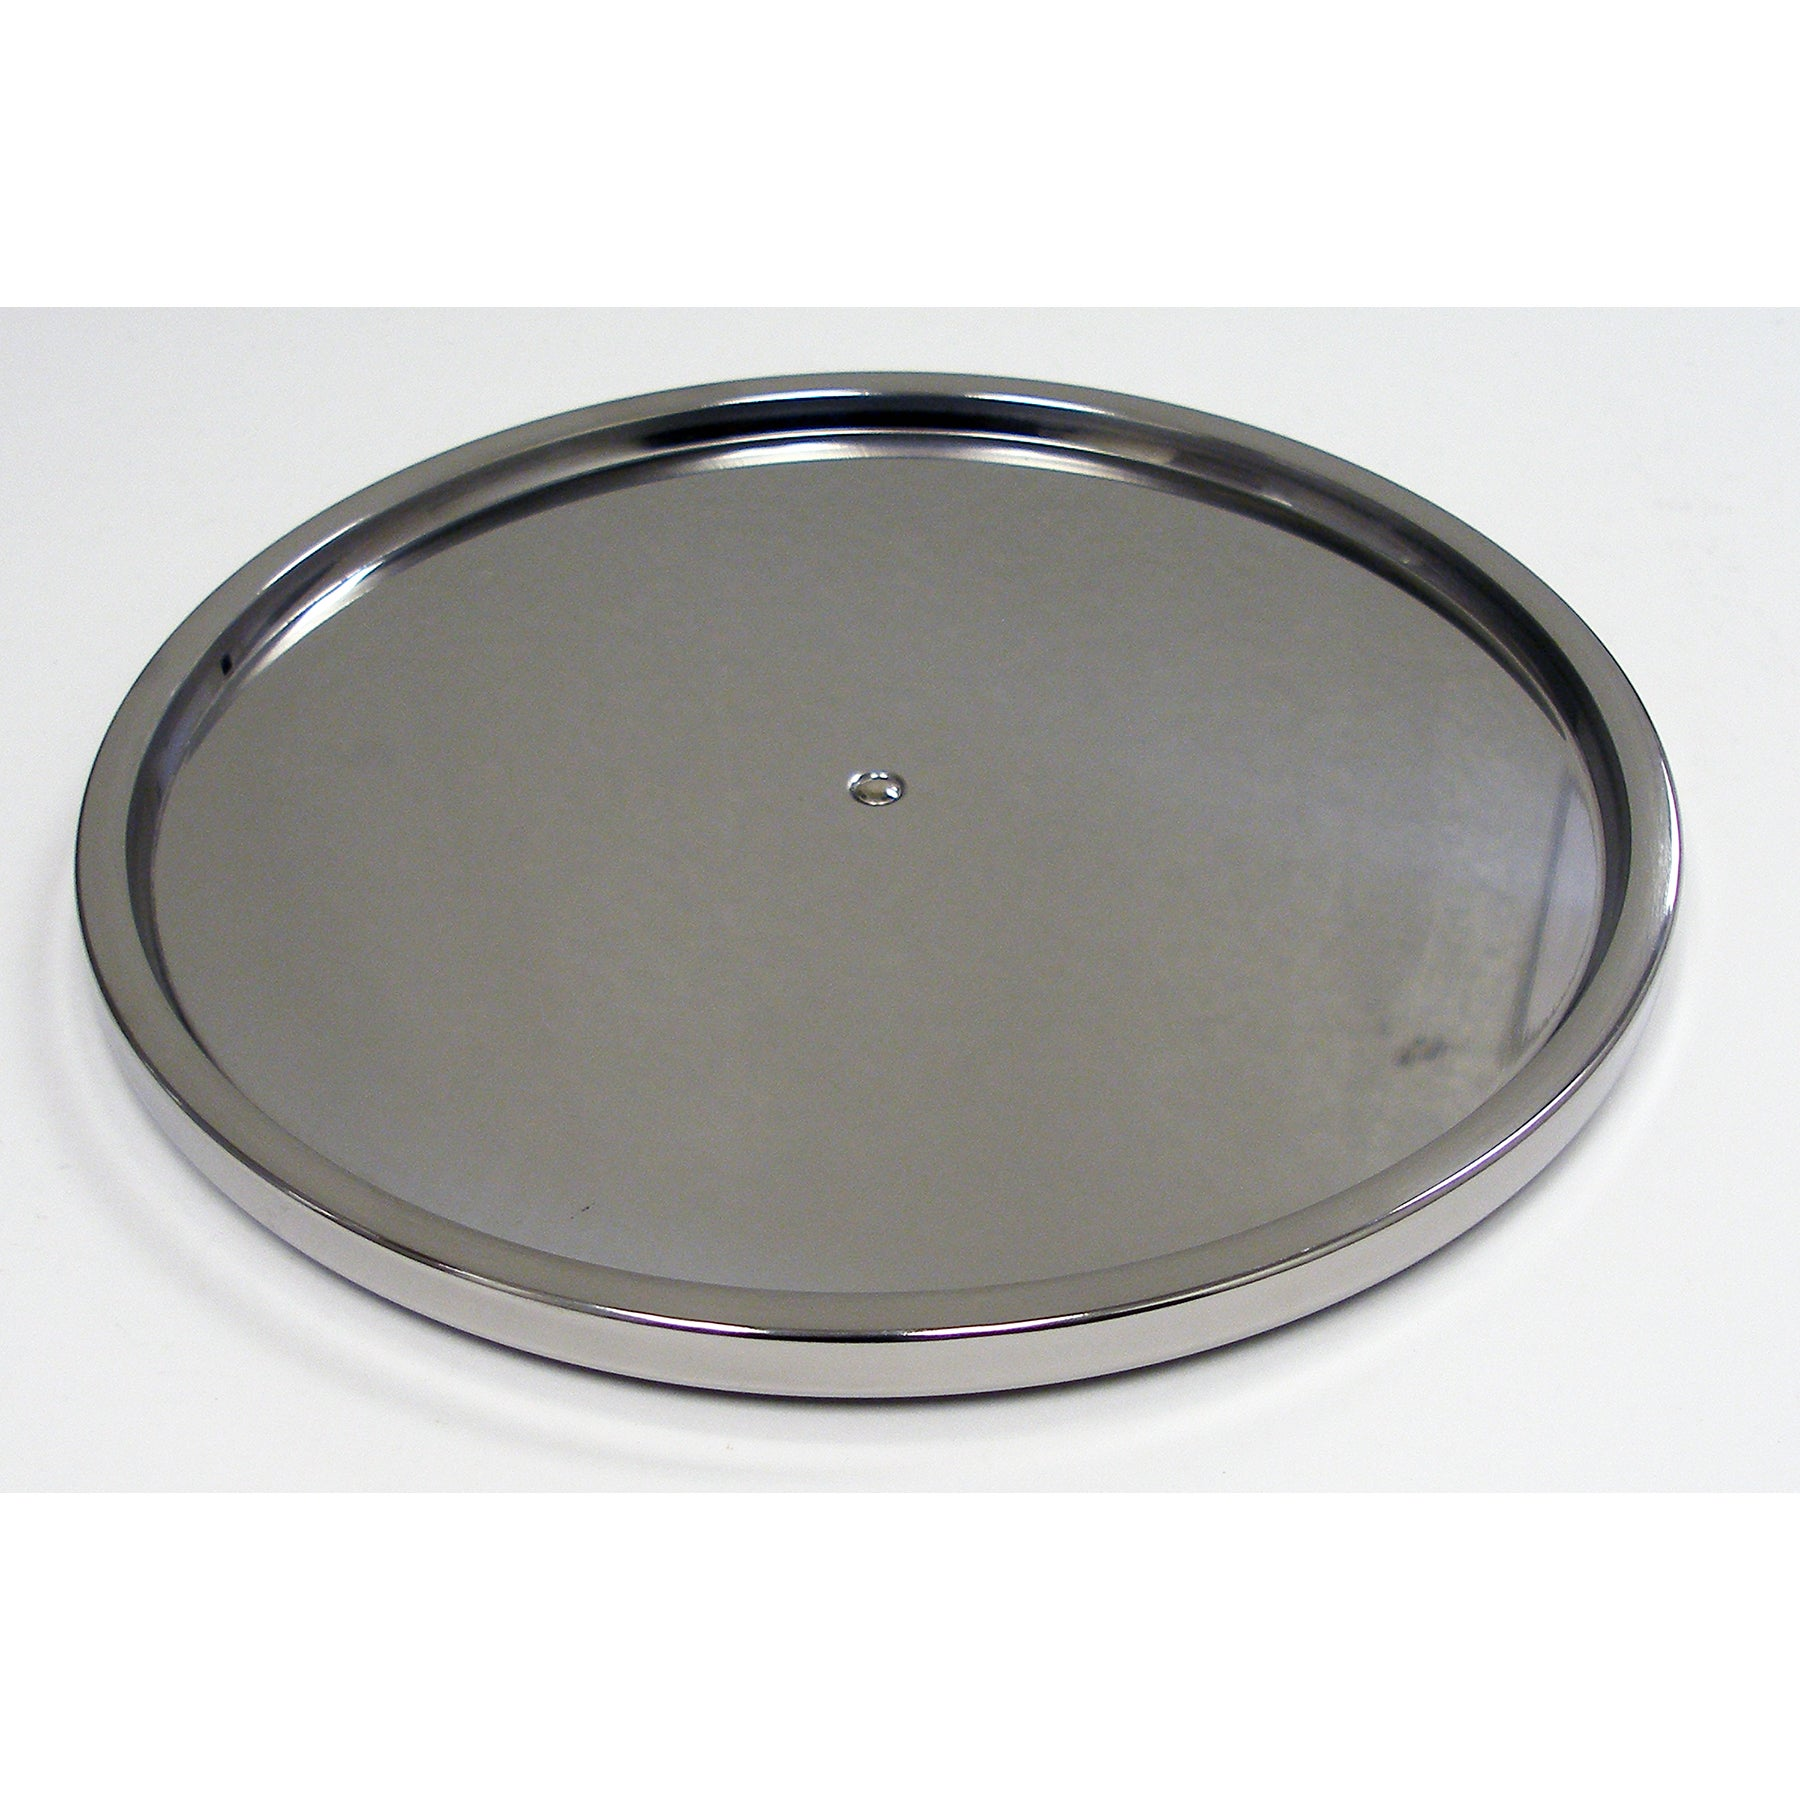 Dial Industries S675p Stainless Steel Single Lazy Susan Turntable Free Shipping On Orders Over 45 12516941